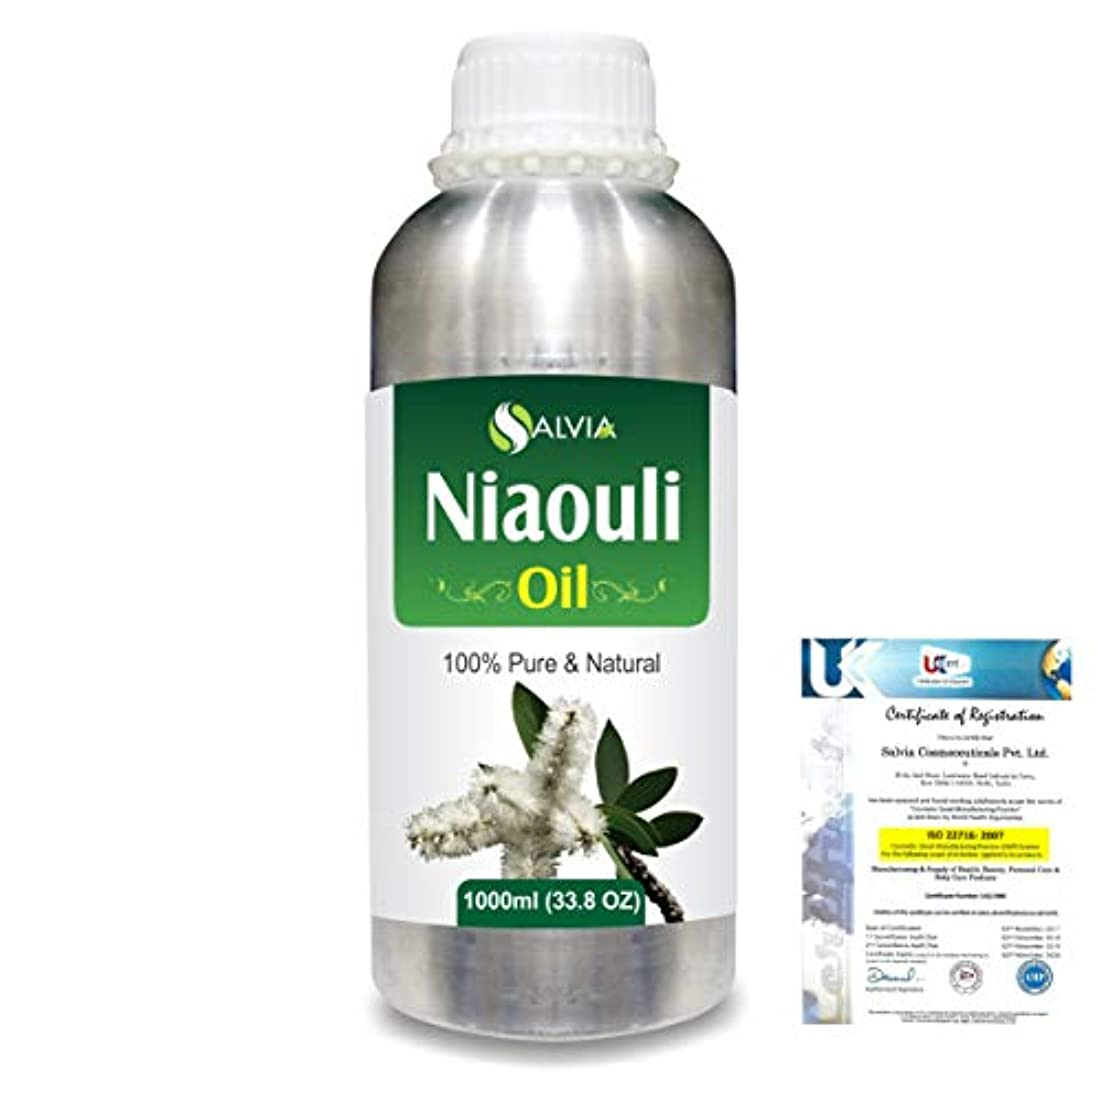 Niaouli (Melaleuca Viridiflora) 100% Natural Pure Essential Oil 1000ml/33.8fl.oz.